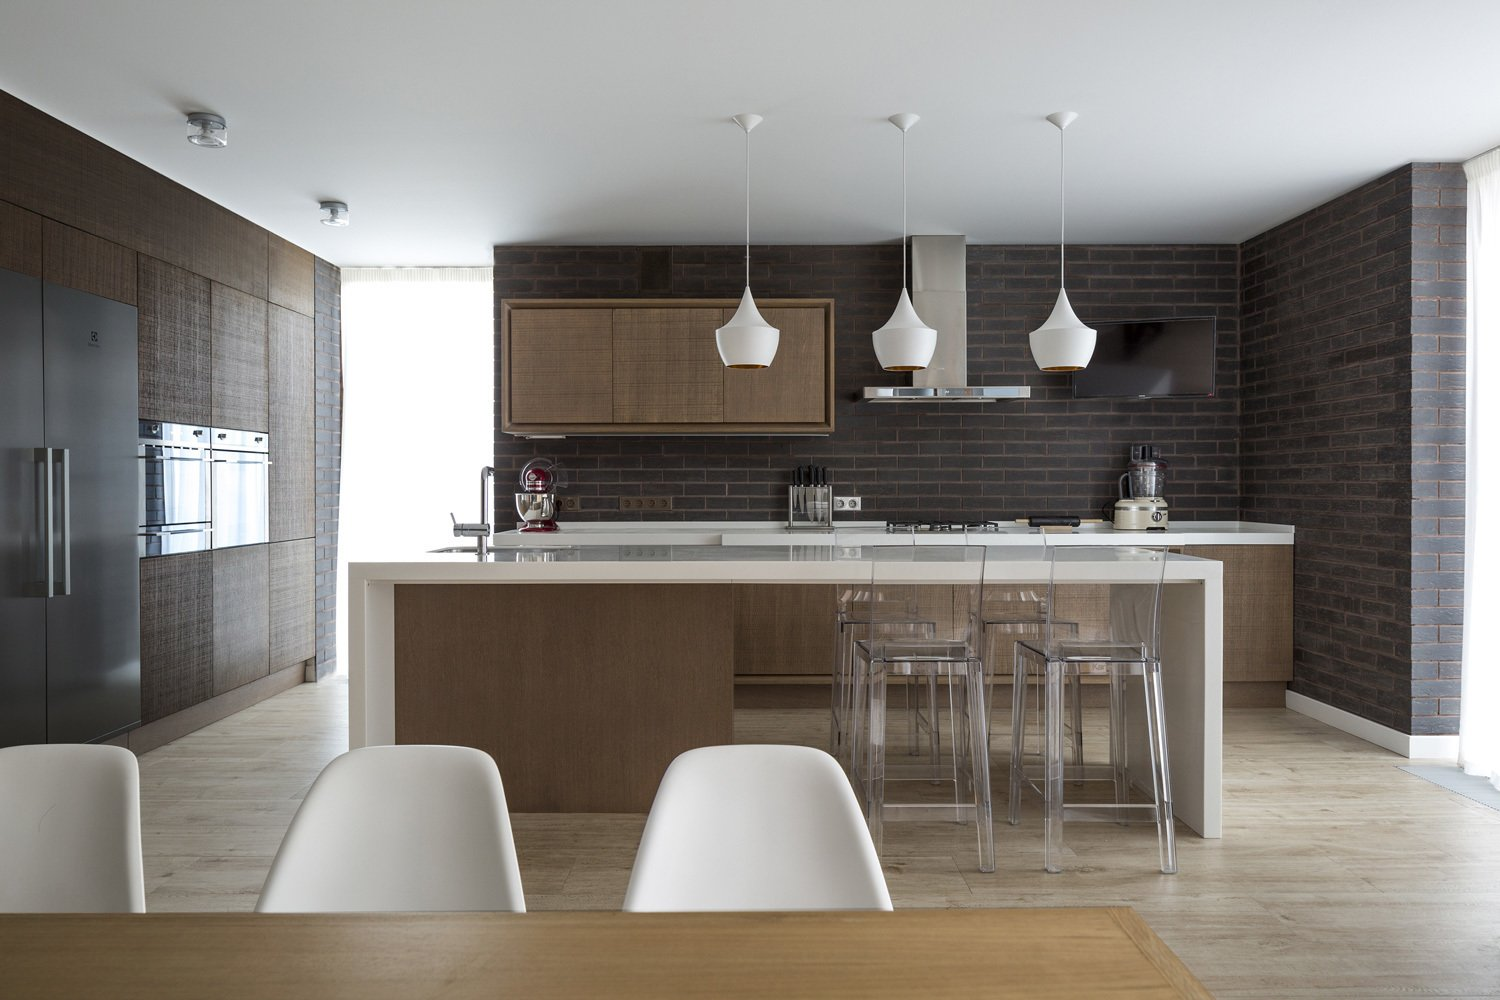 """""""The interior design is restrained, sometimes minimalist, but very expressive,"""" Zhidkov says. The space is outfitted with modern pieces like the Eames Eiffel chairs, lucite bar stools, and geometric pendant lights.  House in Moscow by Laura C. Mallonee"""